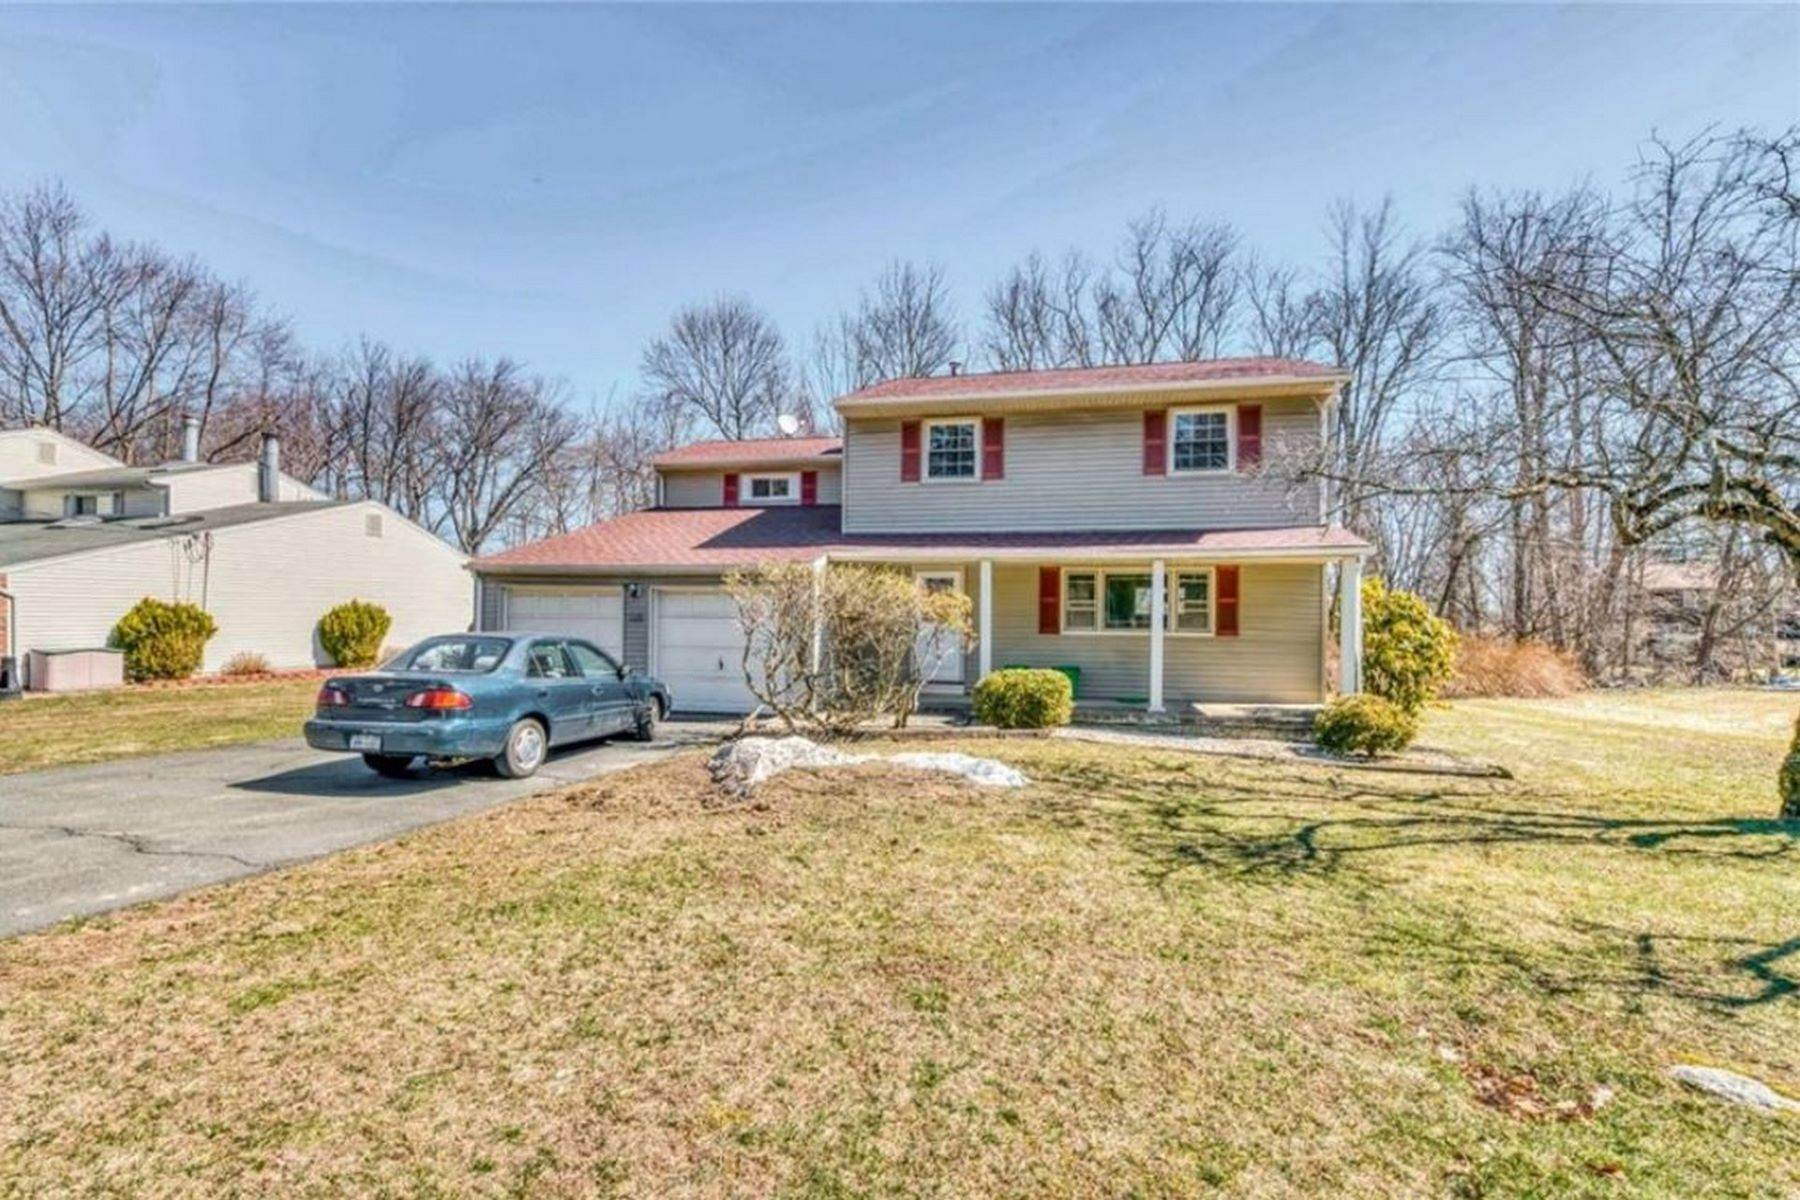 Single Family Homes for Sale at 357 W Clarkstown Rd 357 W Clarkstown Road New City, New York 10956 United States